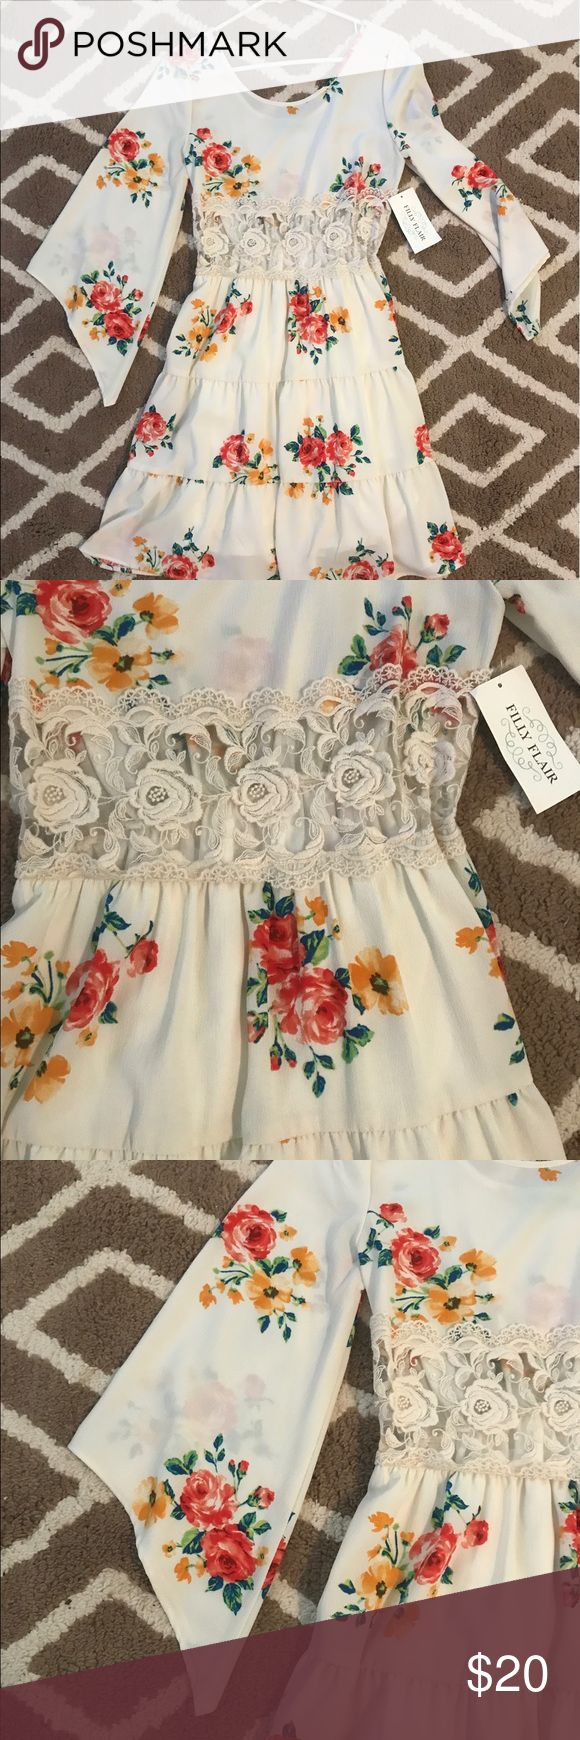 Gorgeous floral dress Cute floral sundress! Never worn, new with tags! Front of the dress has lace, see through cutout. Bottom half of dress is lined. Dresses